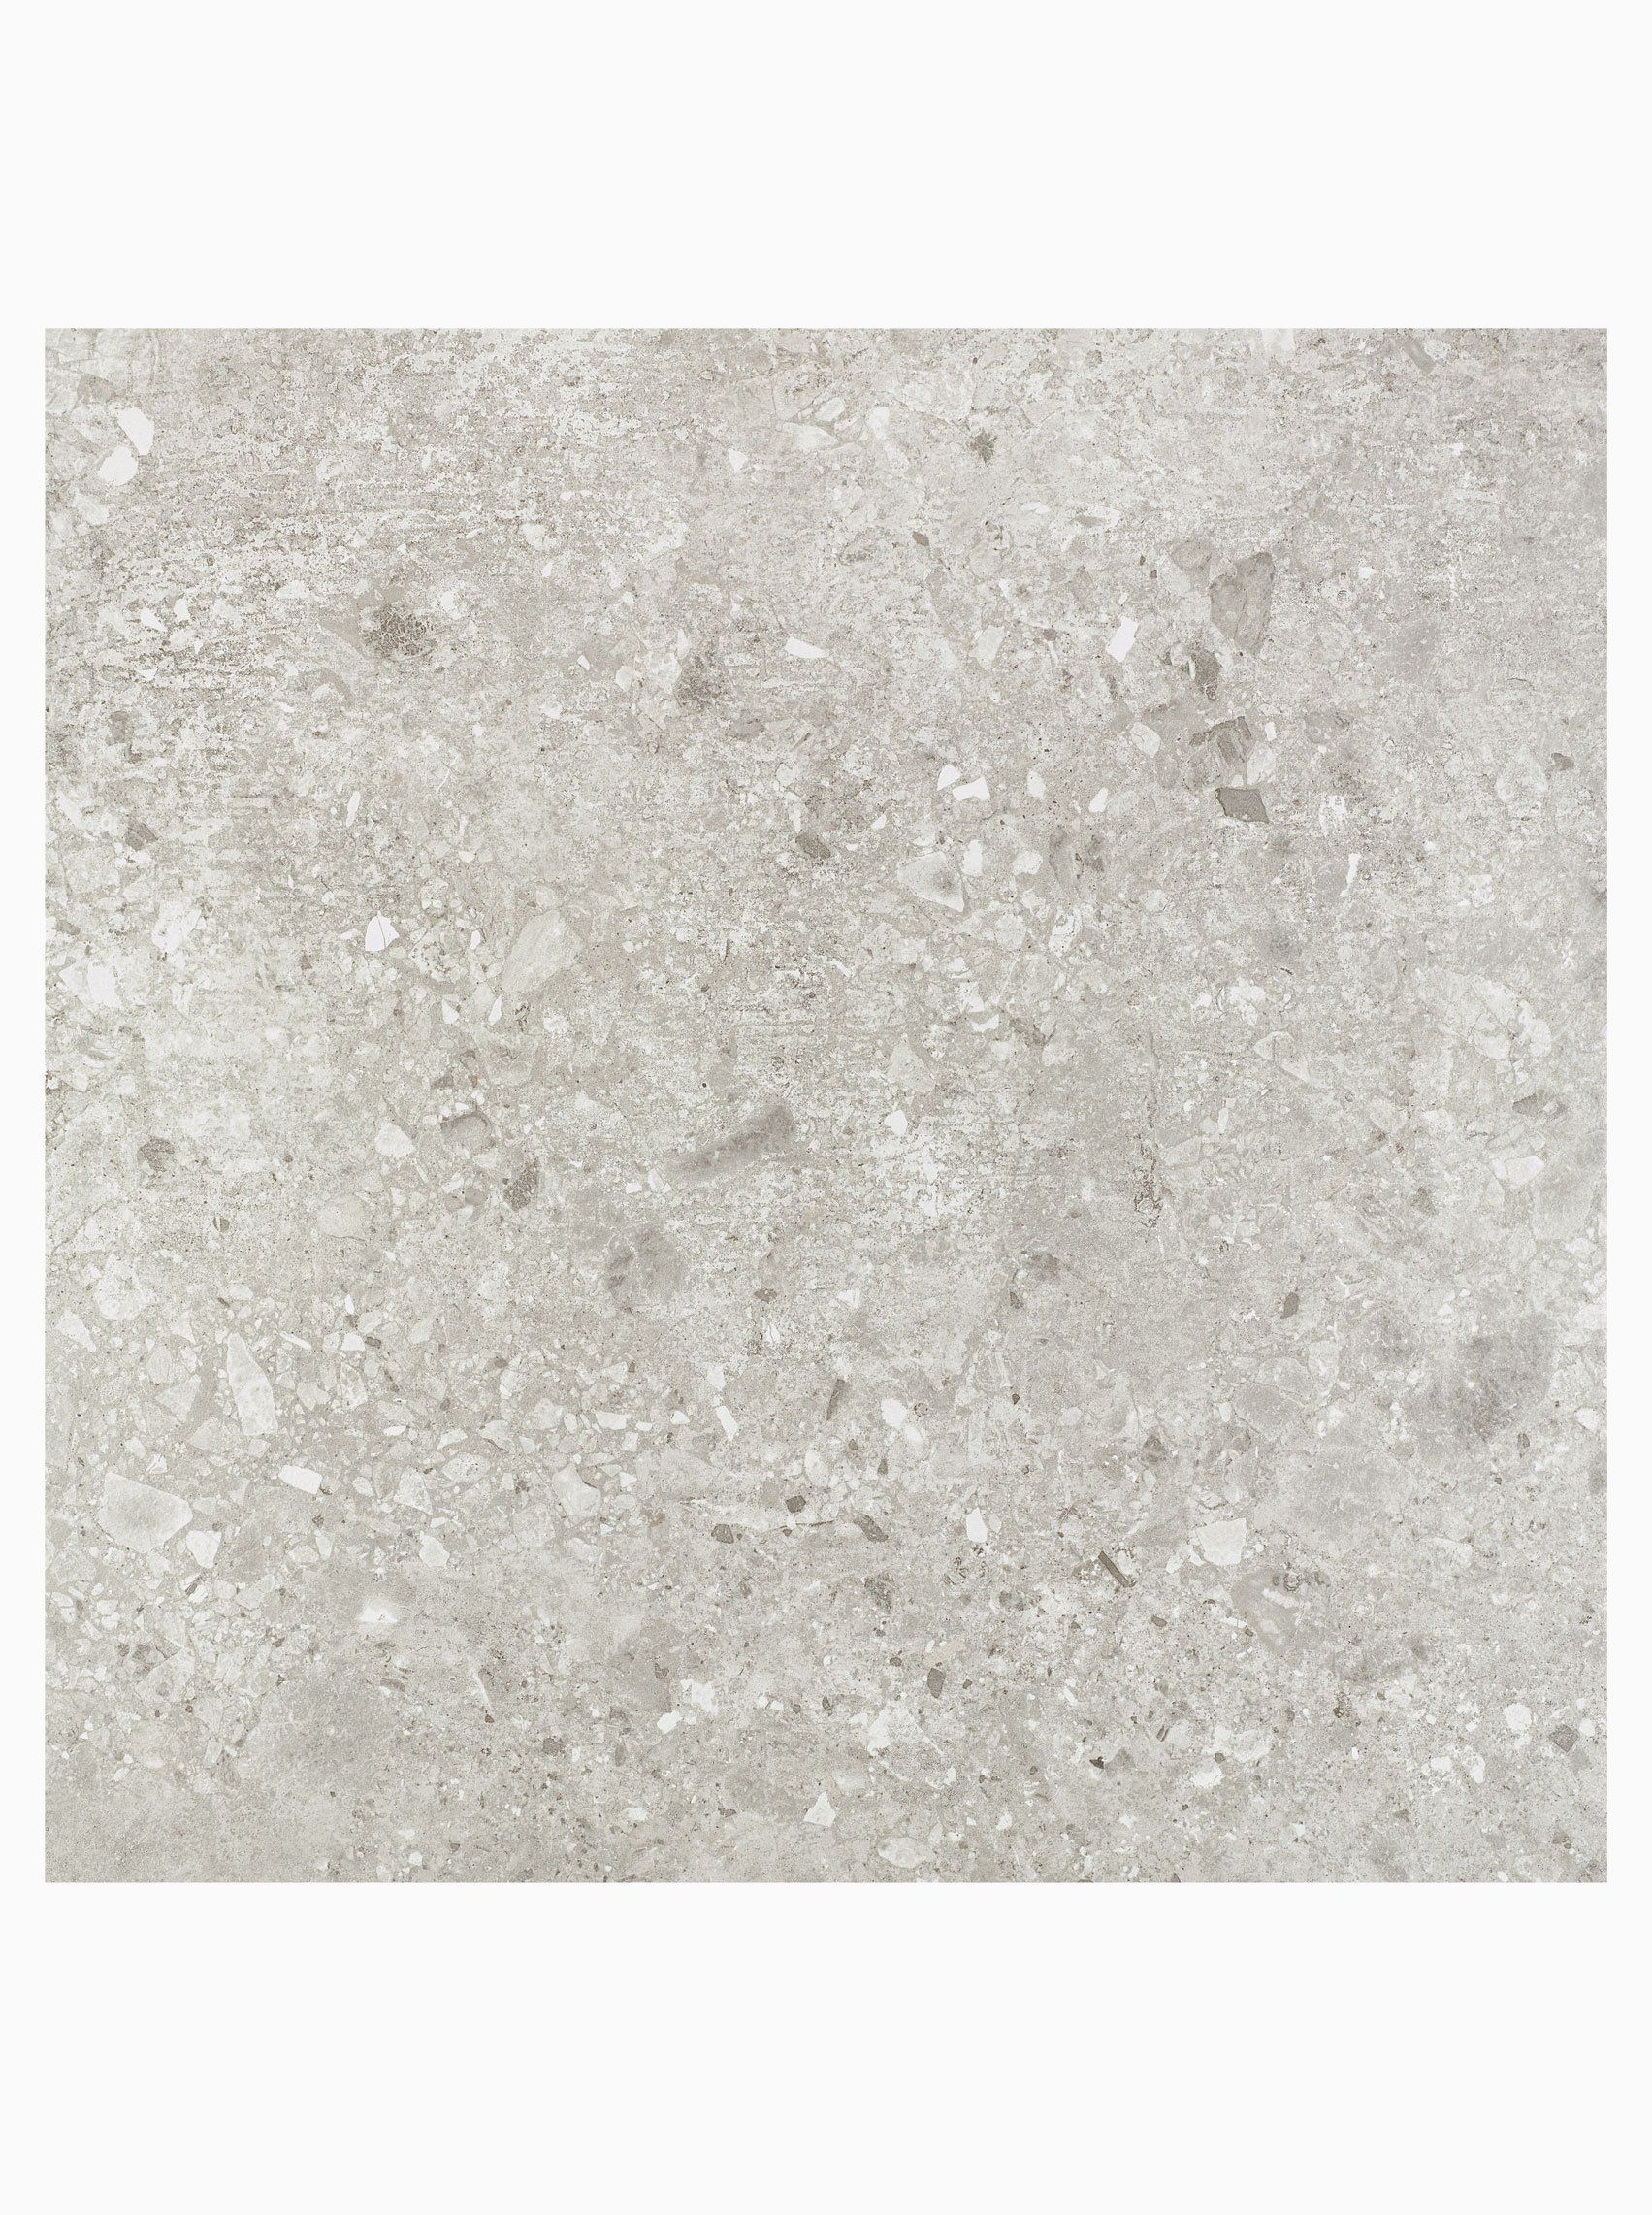 Rinser Naturstein Neutra Greyish 60x60cm | Wall And Floor Tiles, Flooring, Tile Floor